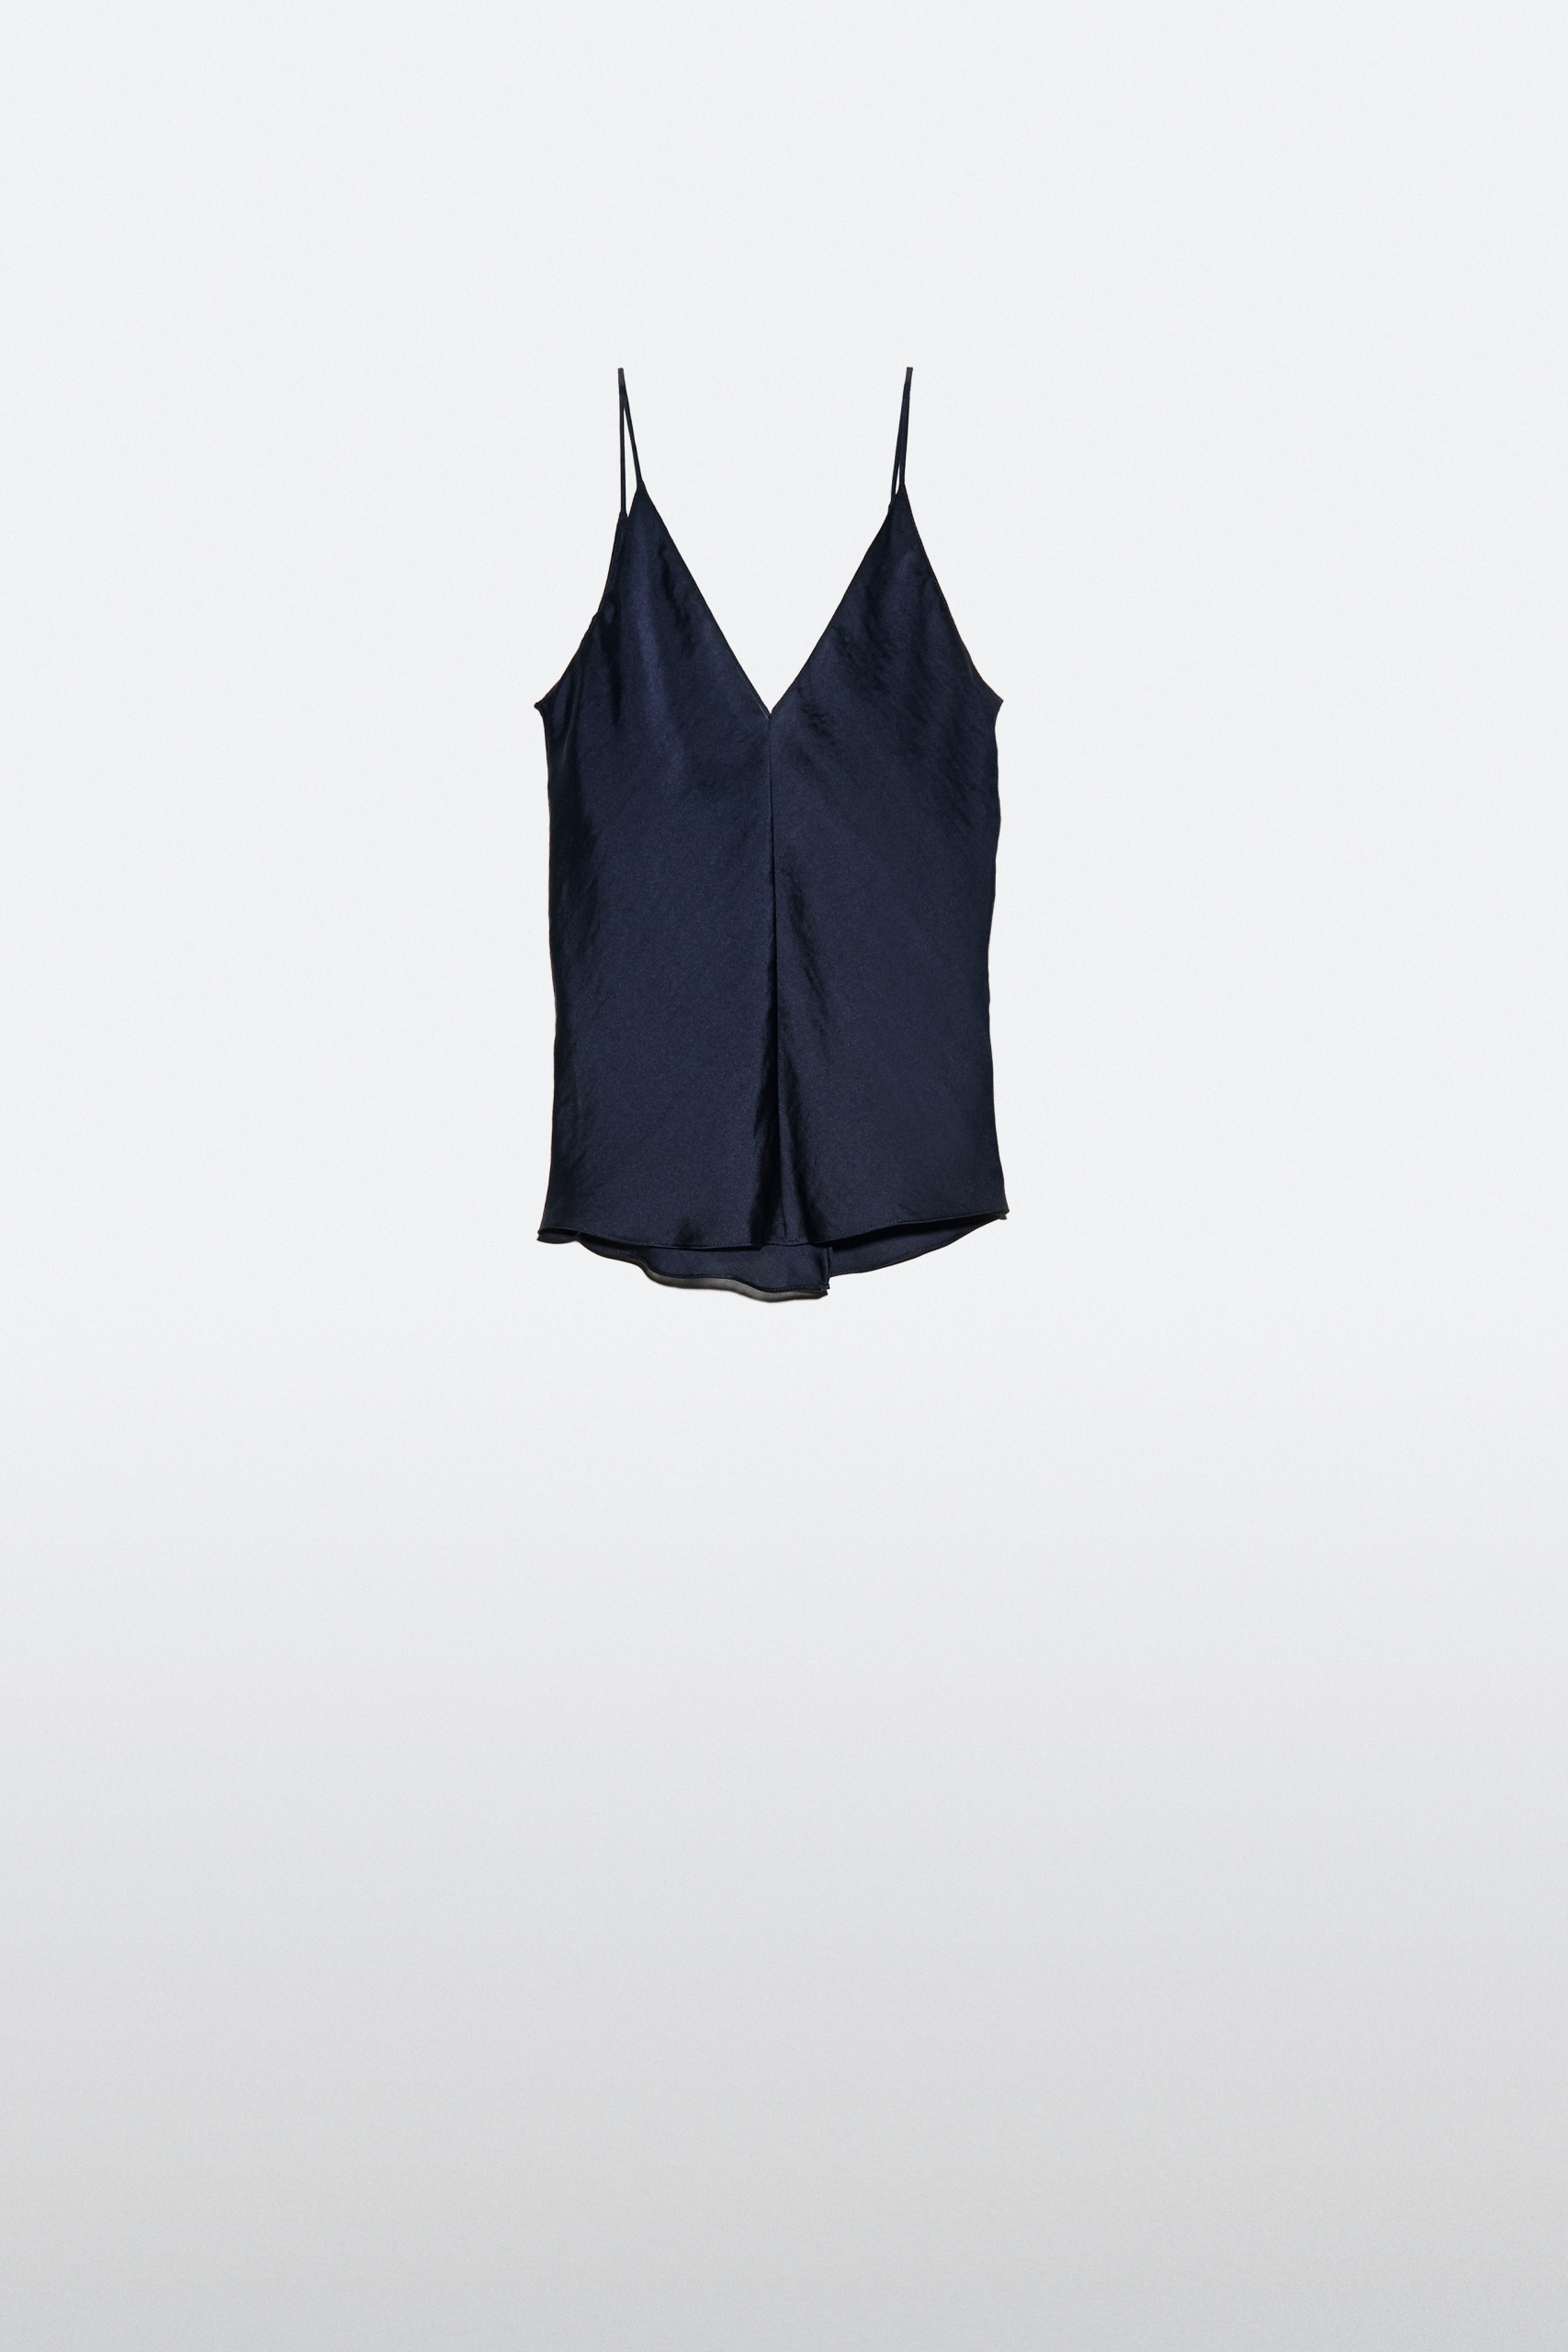 ©OBANDO | NAVY CAMISOLE 1 scaled